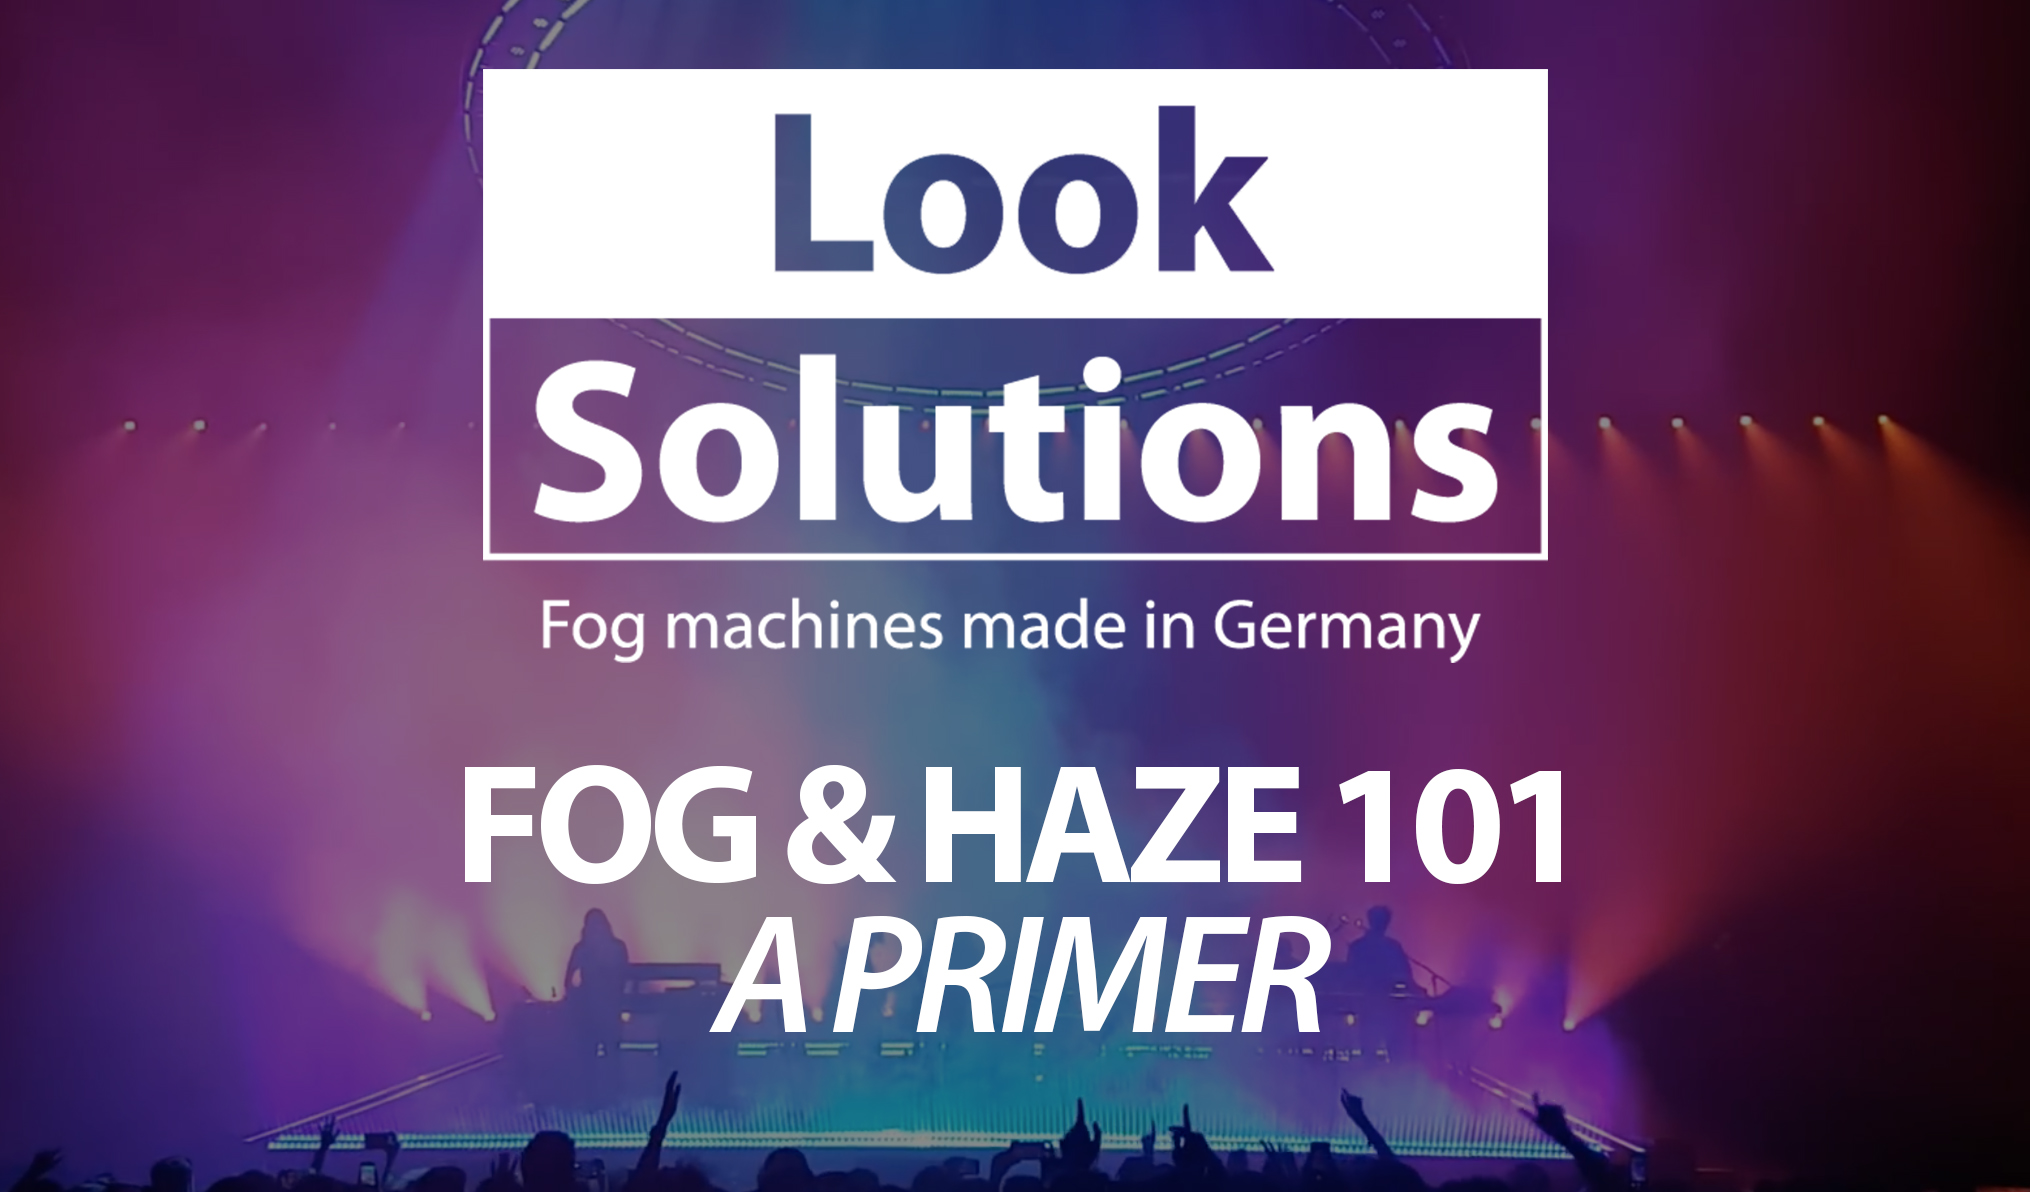 fog and haze machine 101